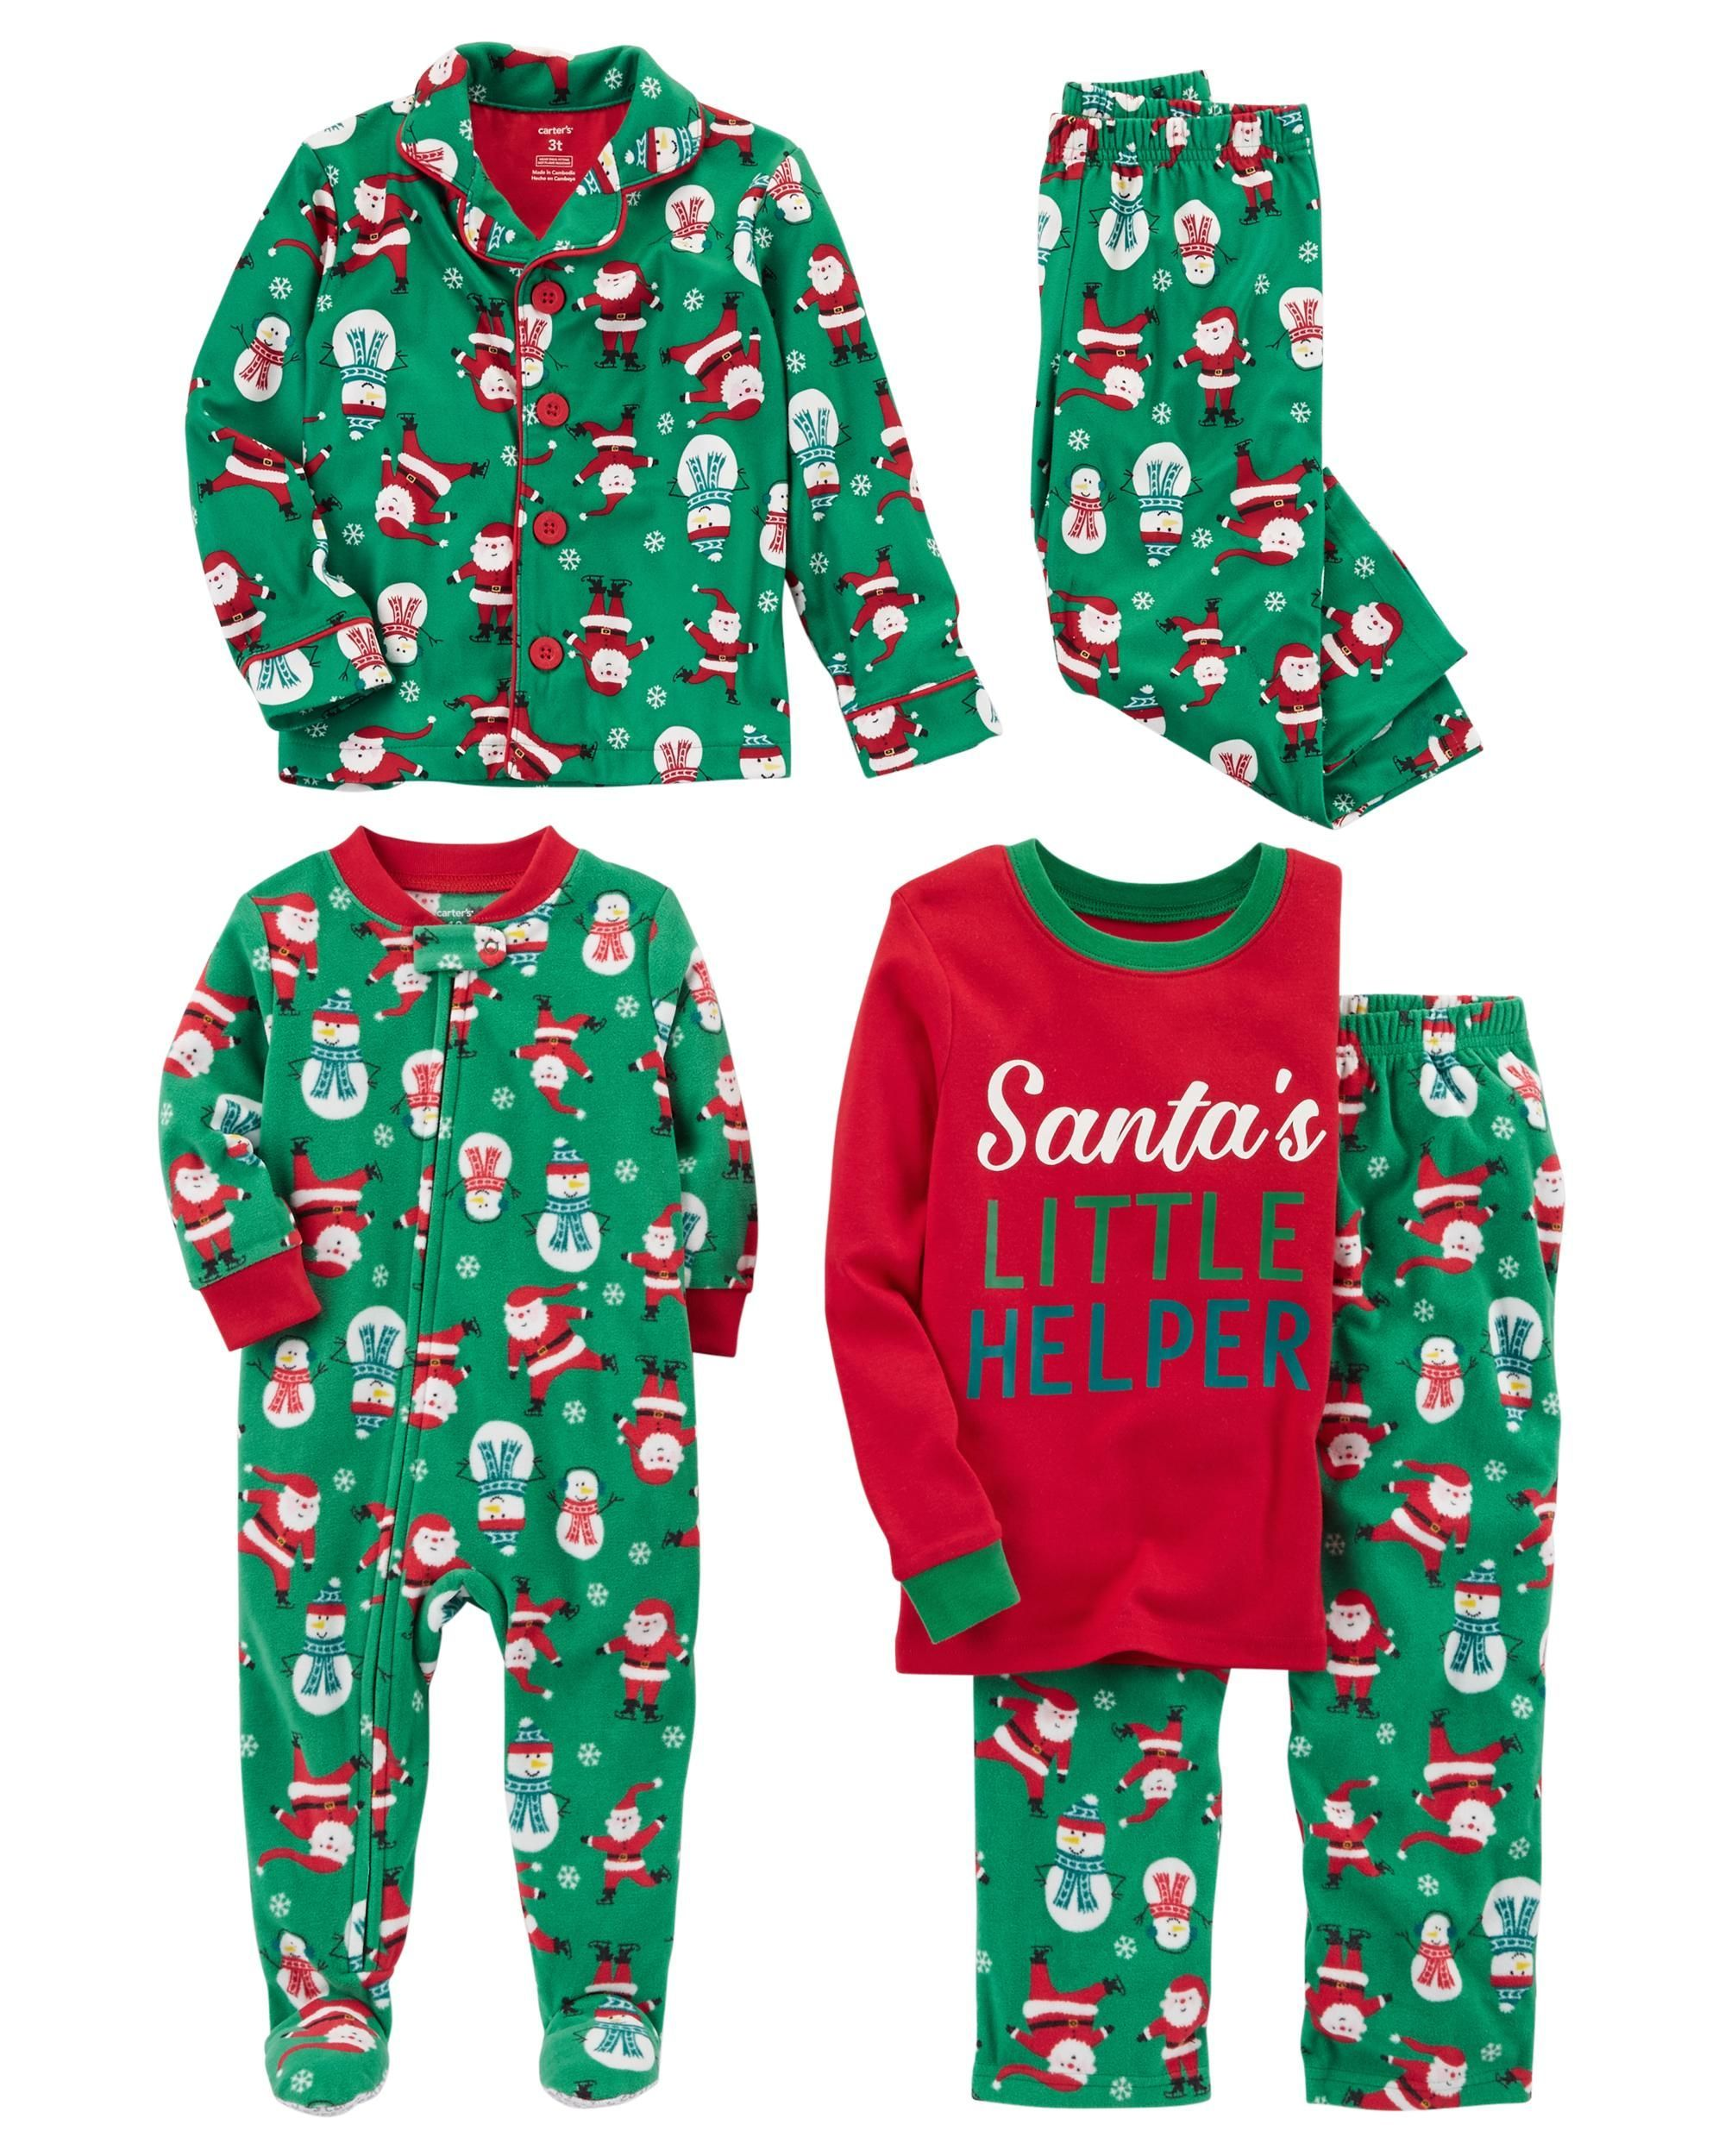 Carters Holiday Sleepwear Santa Suit 3T